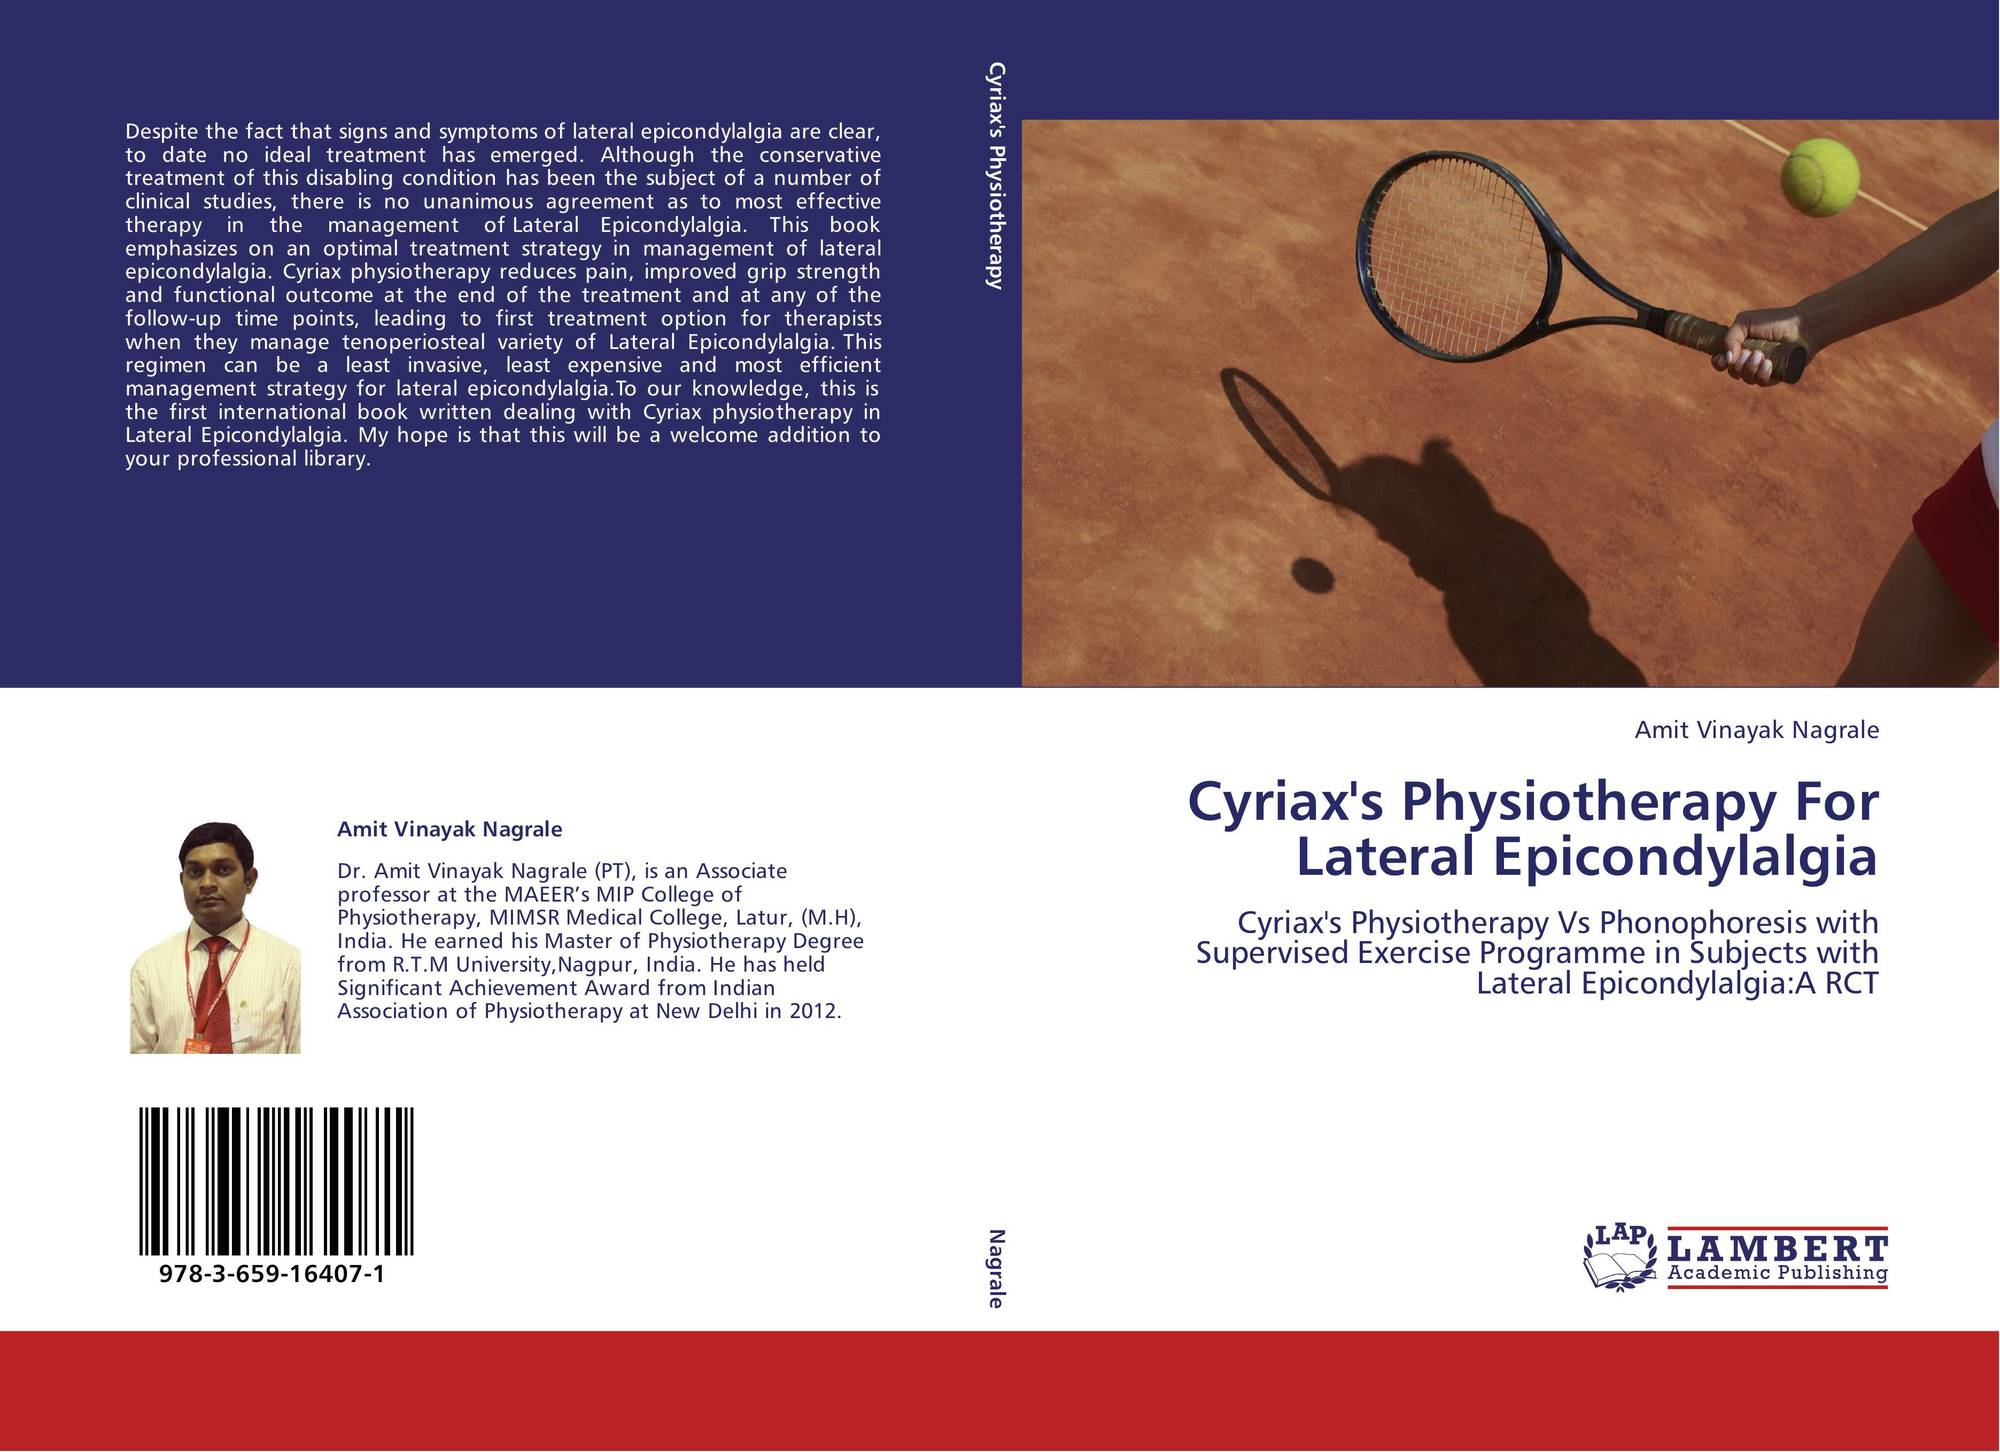 Cyriax's Physiotherapy For Lateral Epicondylalgia, 978-3-659